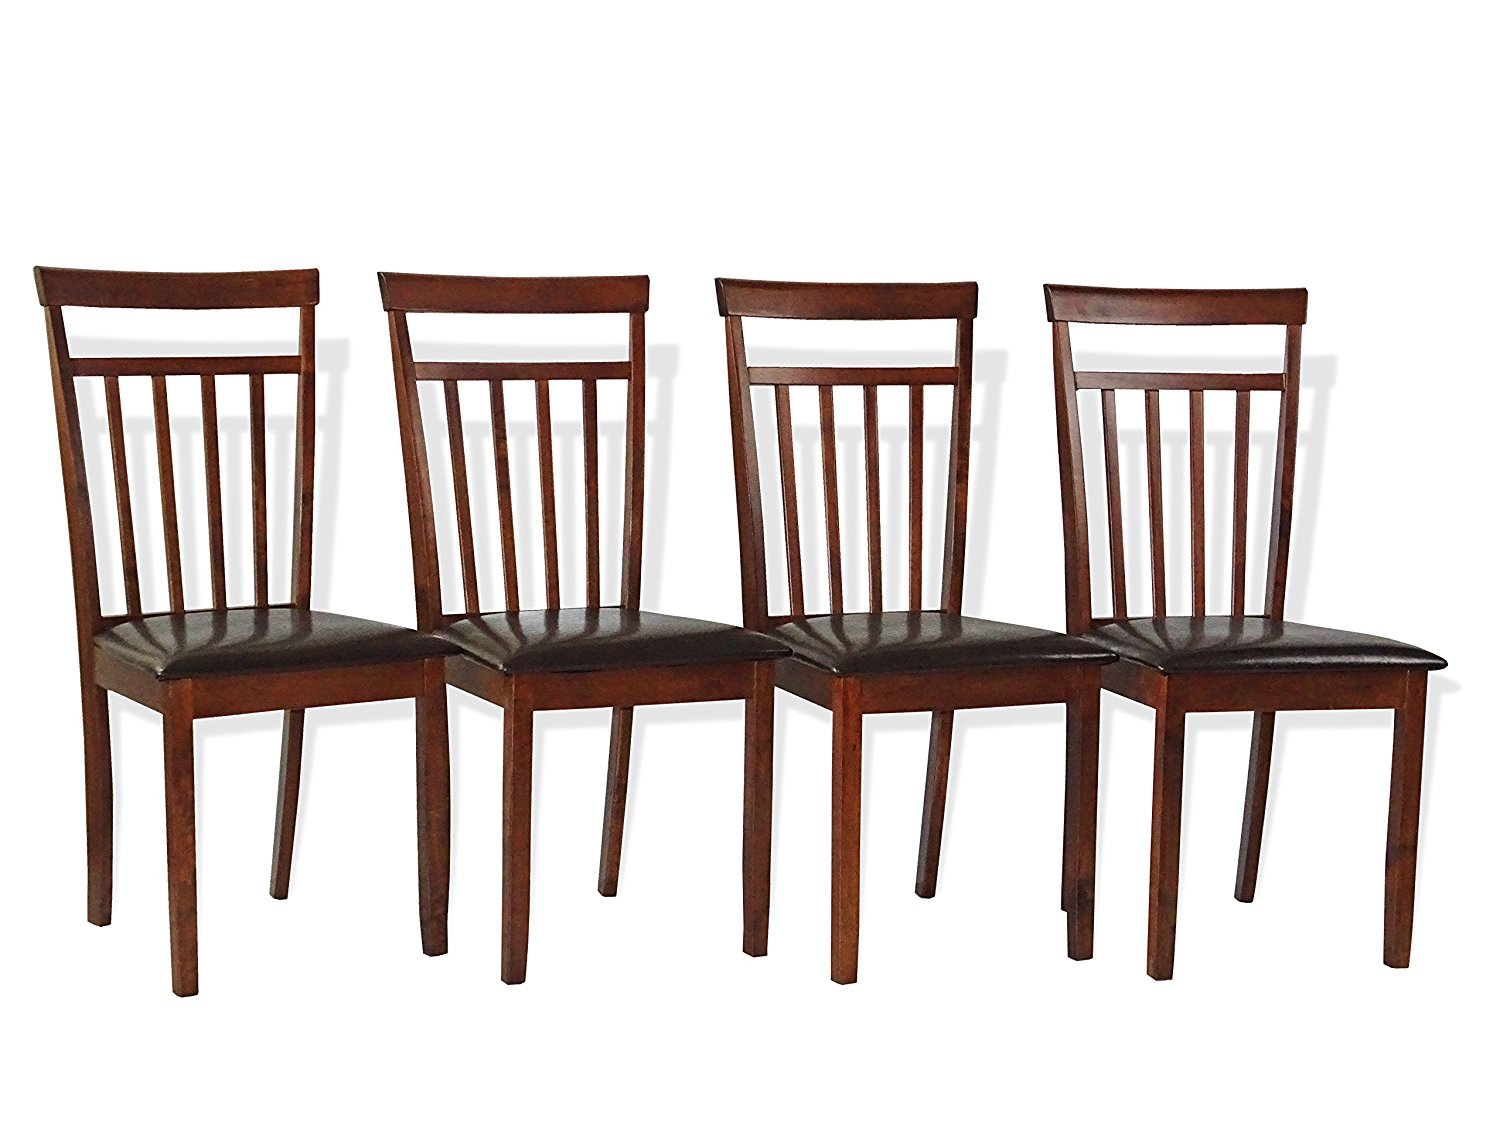 Warm Wooden Chairs Set Of 4 Rattan USA